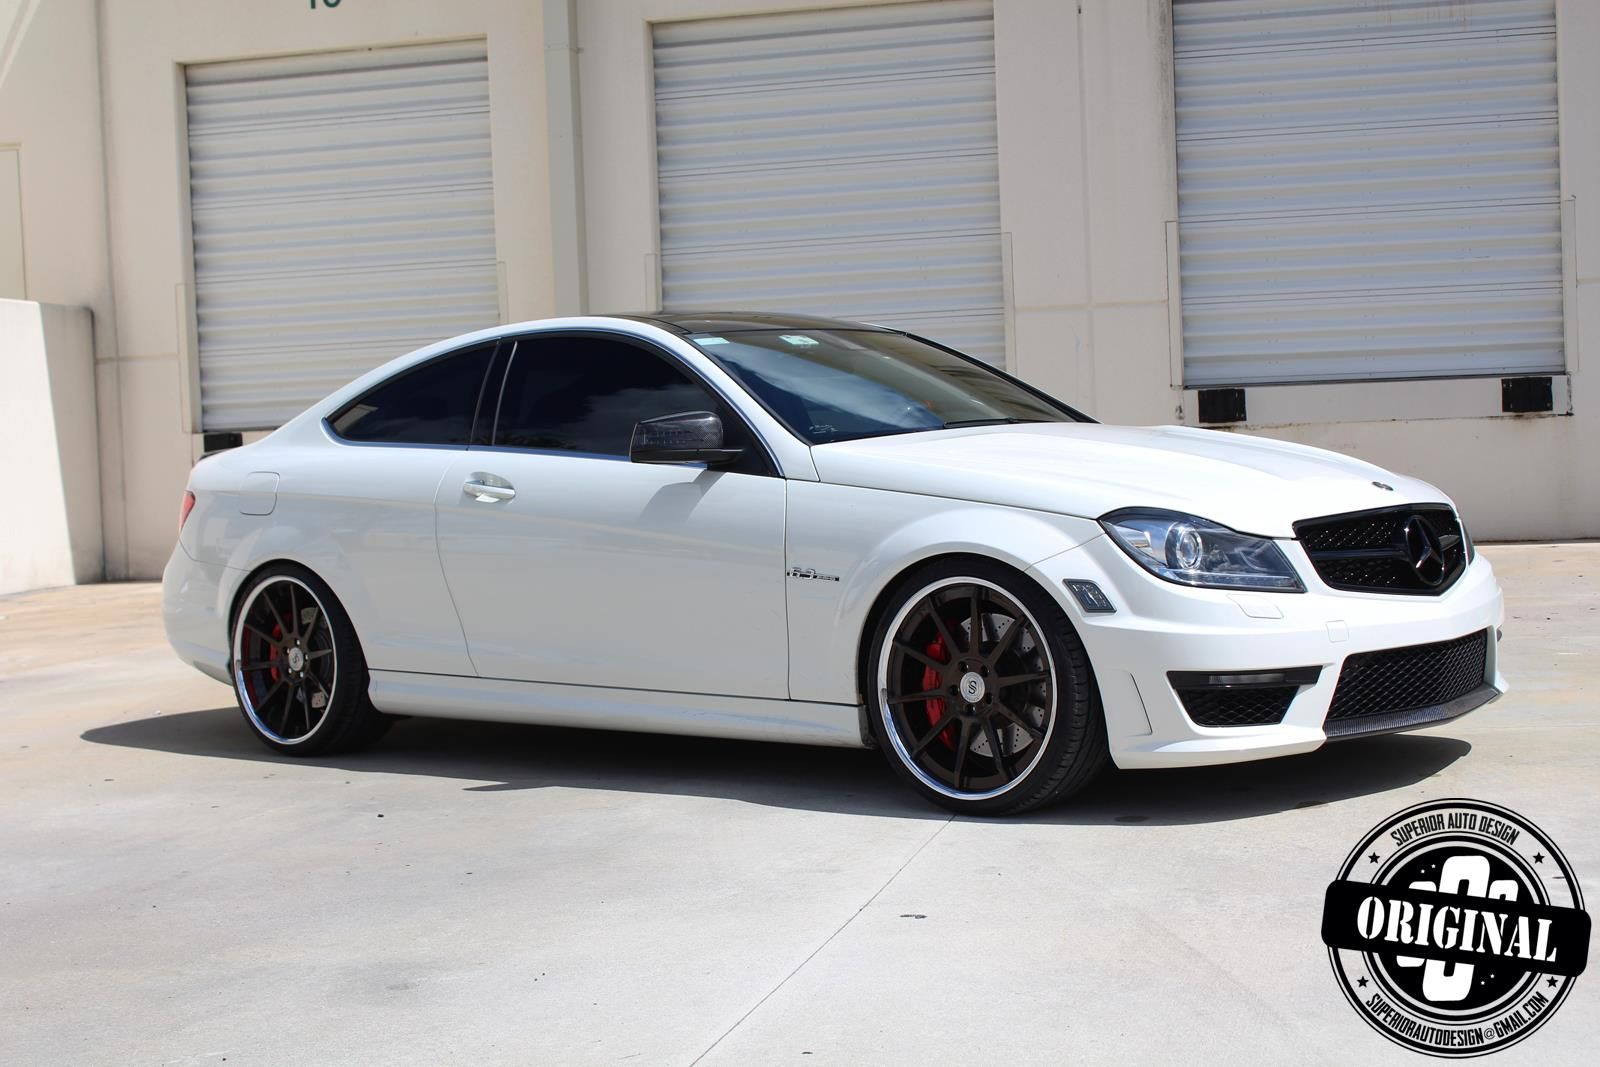 Cocainewhite C63 AMG Coupe with Forged Strasse Wheels  Your